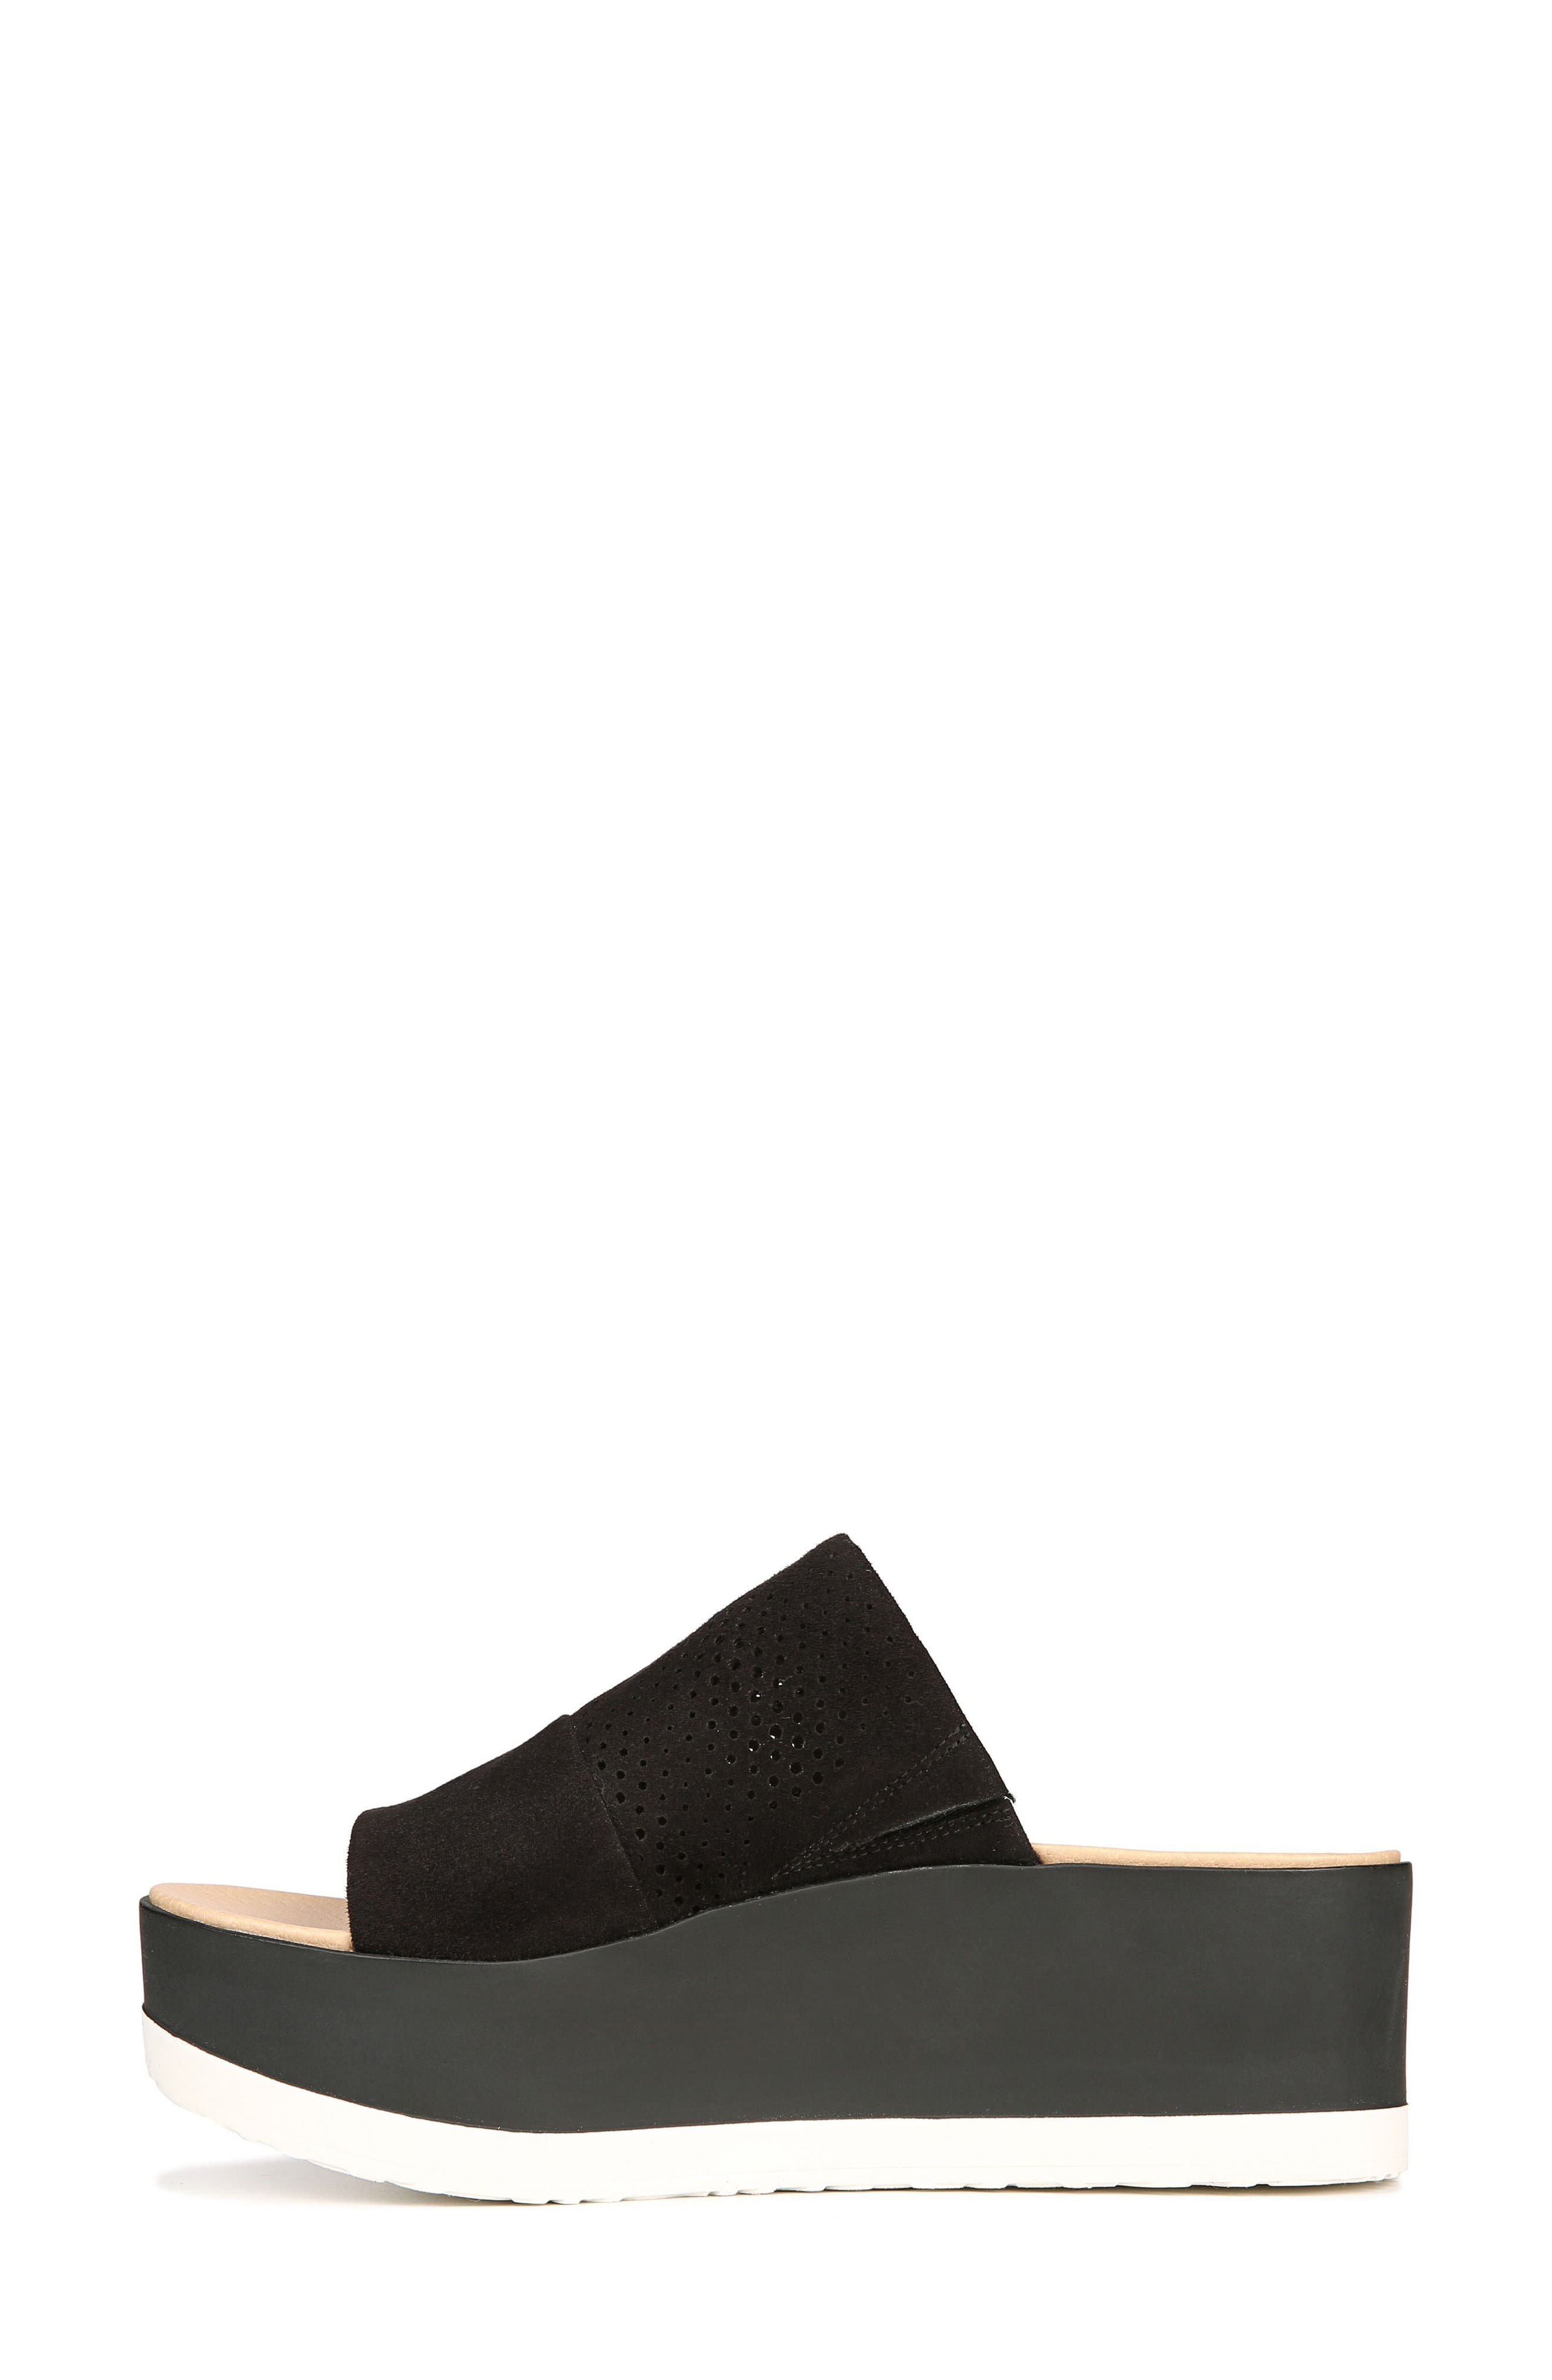 Collins Platform Sandal,                             Alternate thumbnail 3, color,                             BLACK FABRIC